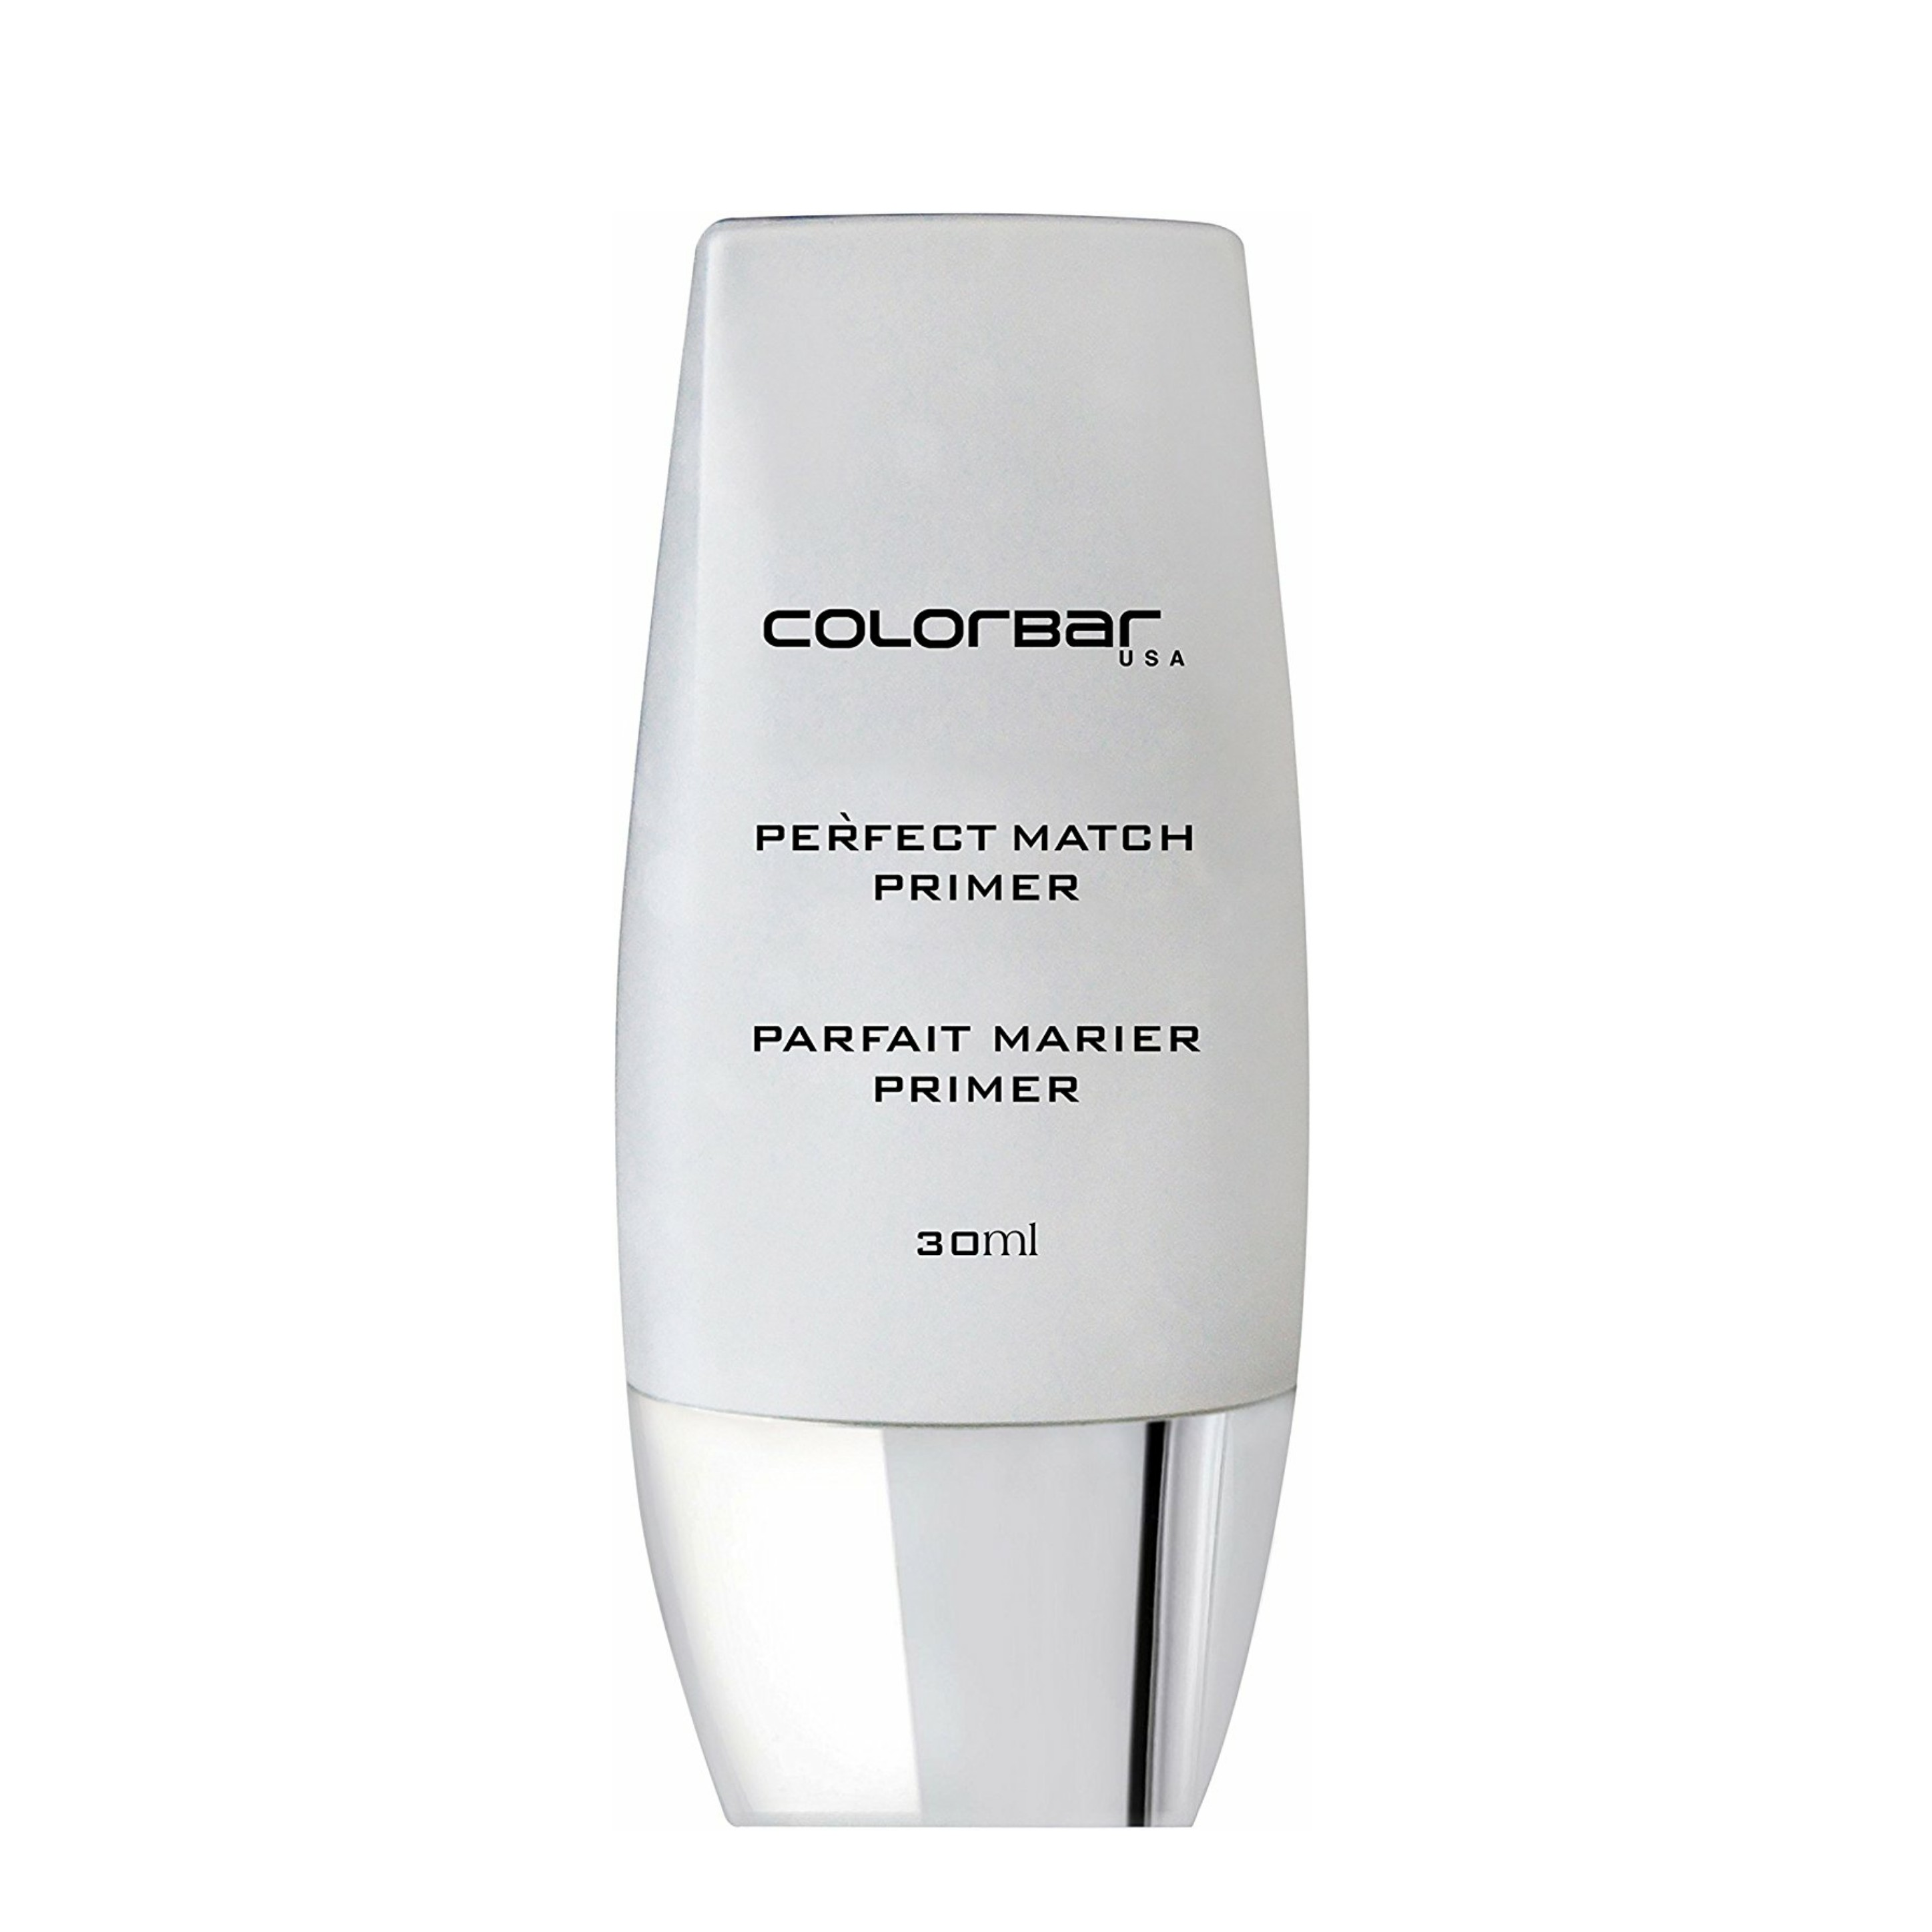 Best Primer For Combination Skin In India, best drugstore makeup primer in india - colorbar primer review 2019